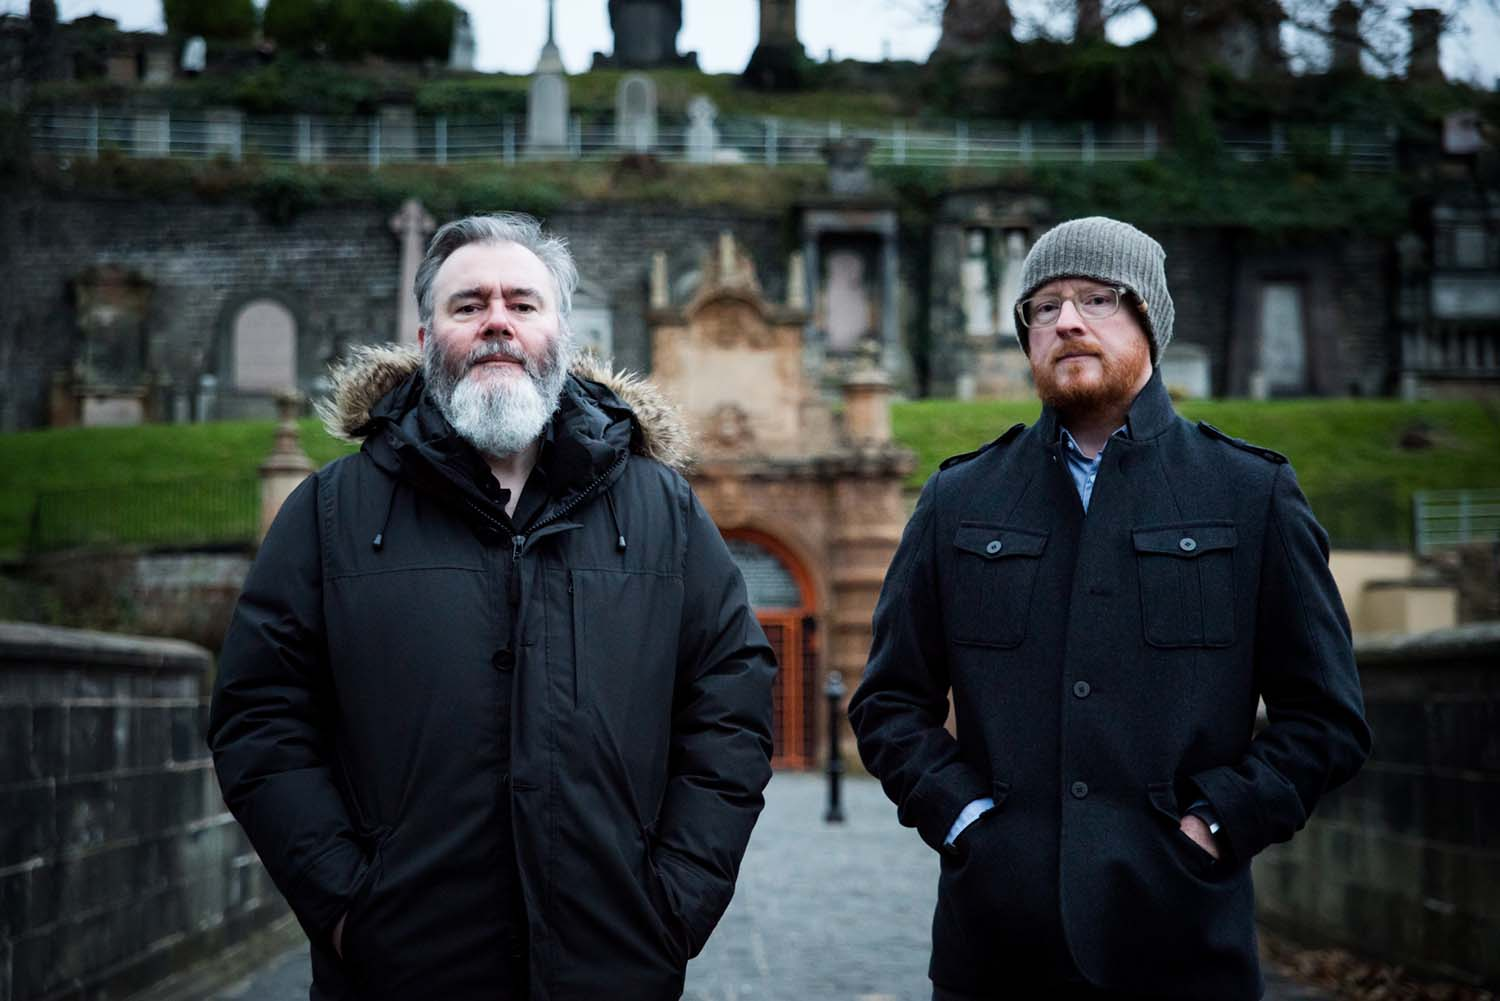 The Spree 2021 with Arab Strap, photo by Kat Gollack